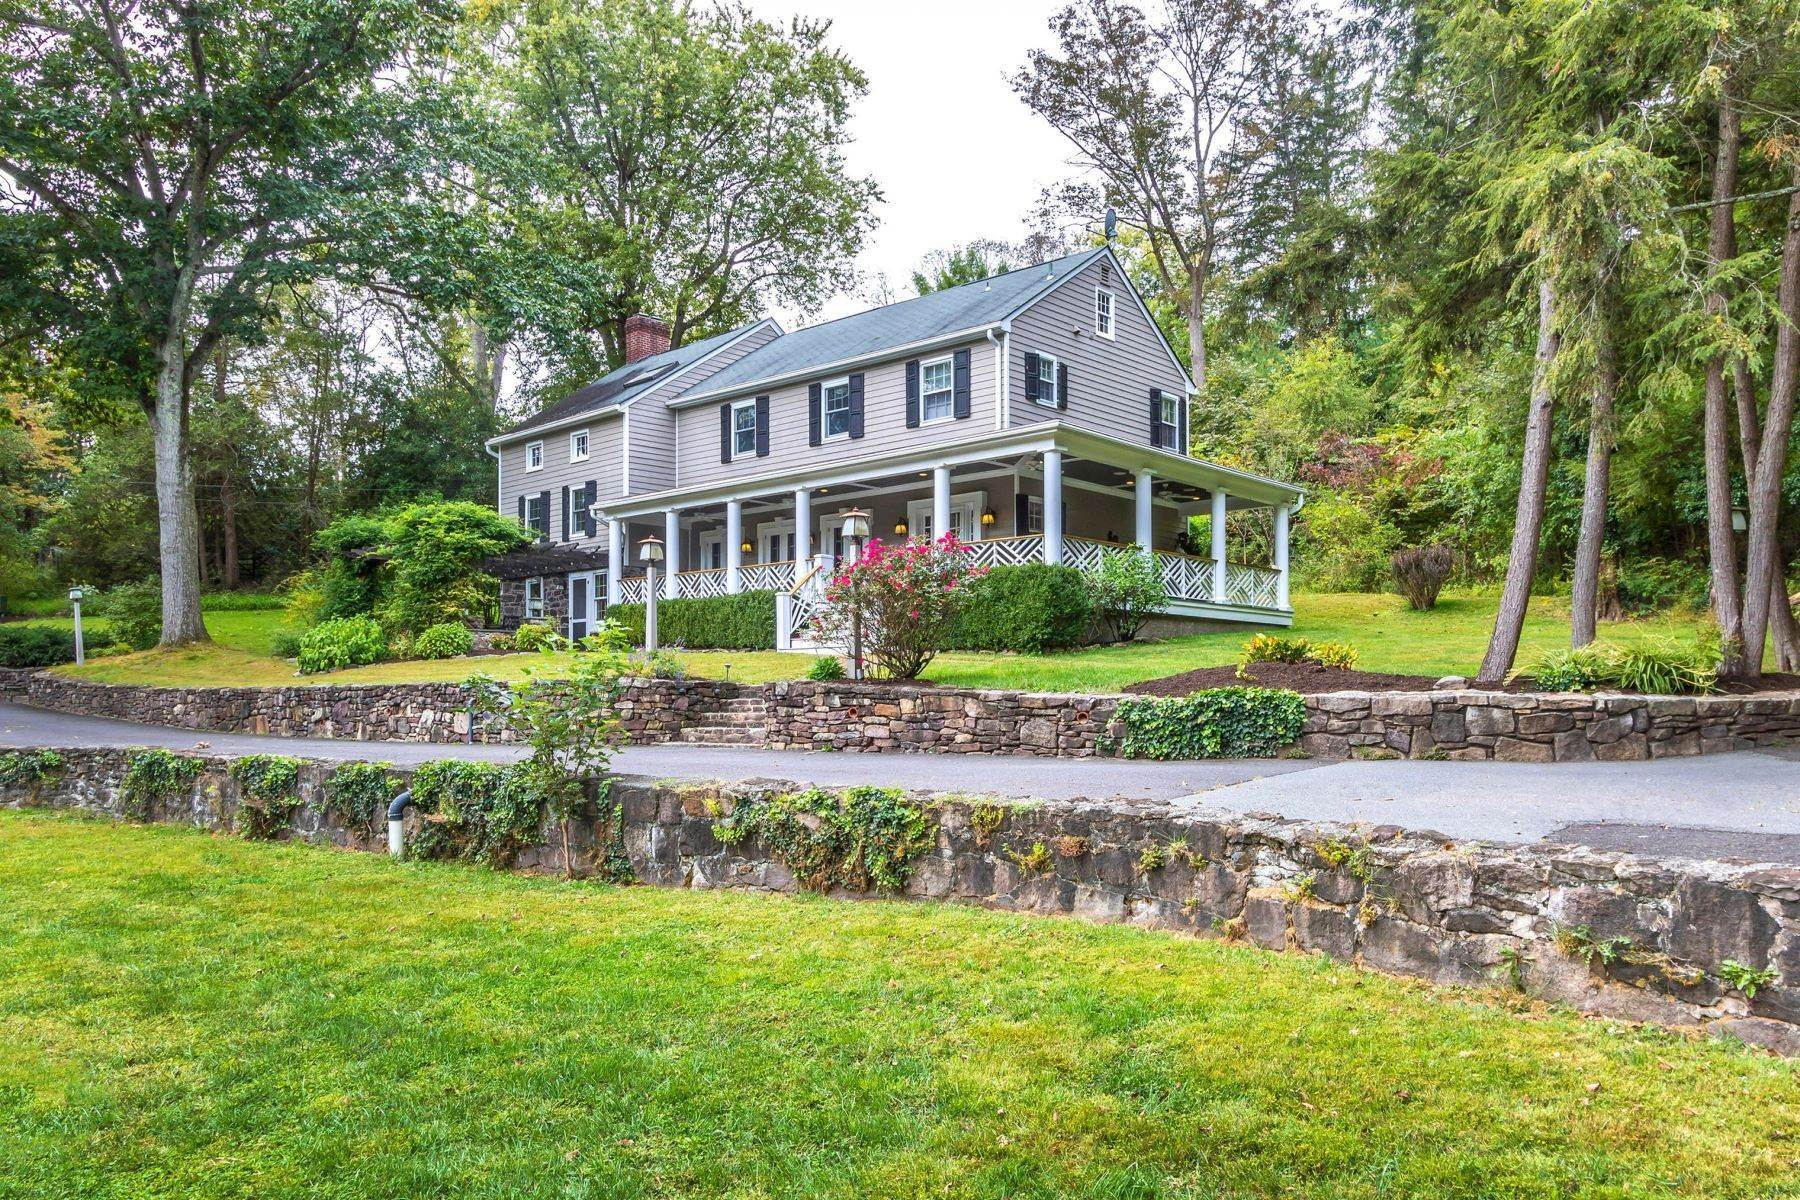 Single Family Homes for Sale at 16 MILL RD Lambertville, New Jersey 08530 United States